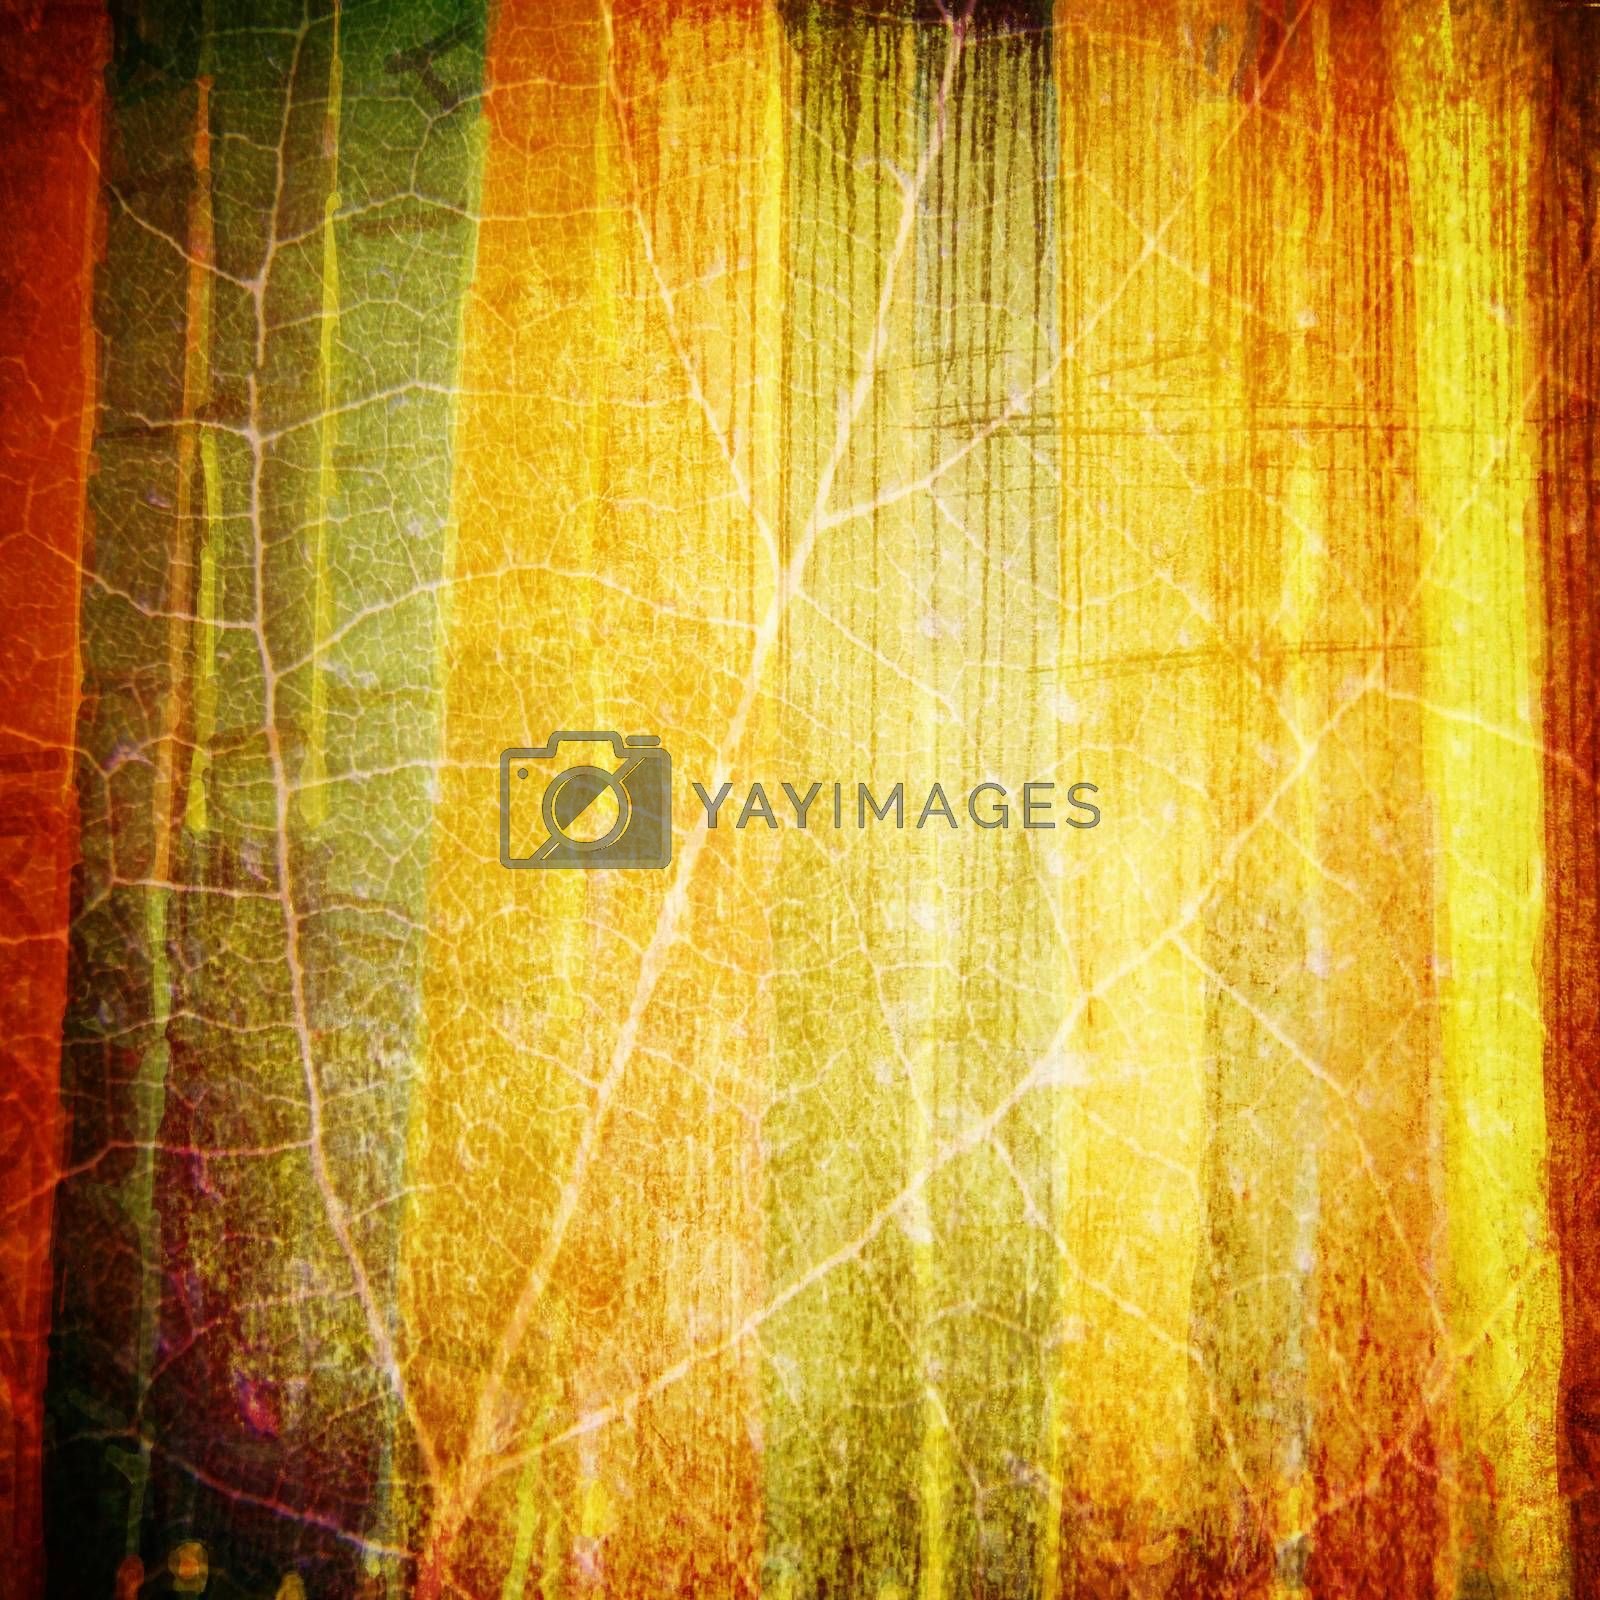 Illustration of abstract stripped retro background